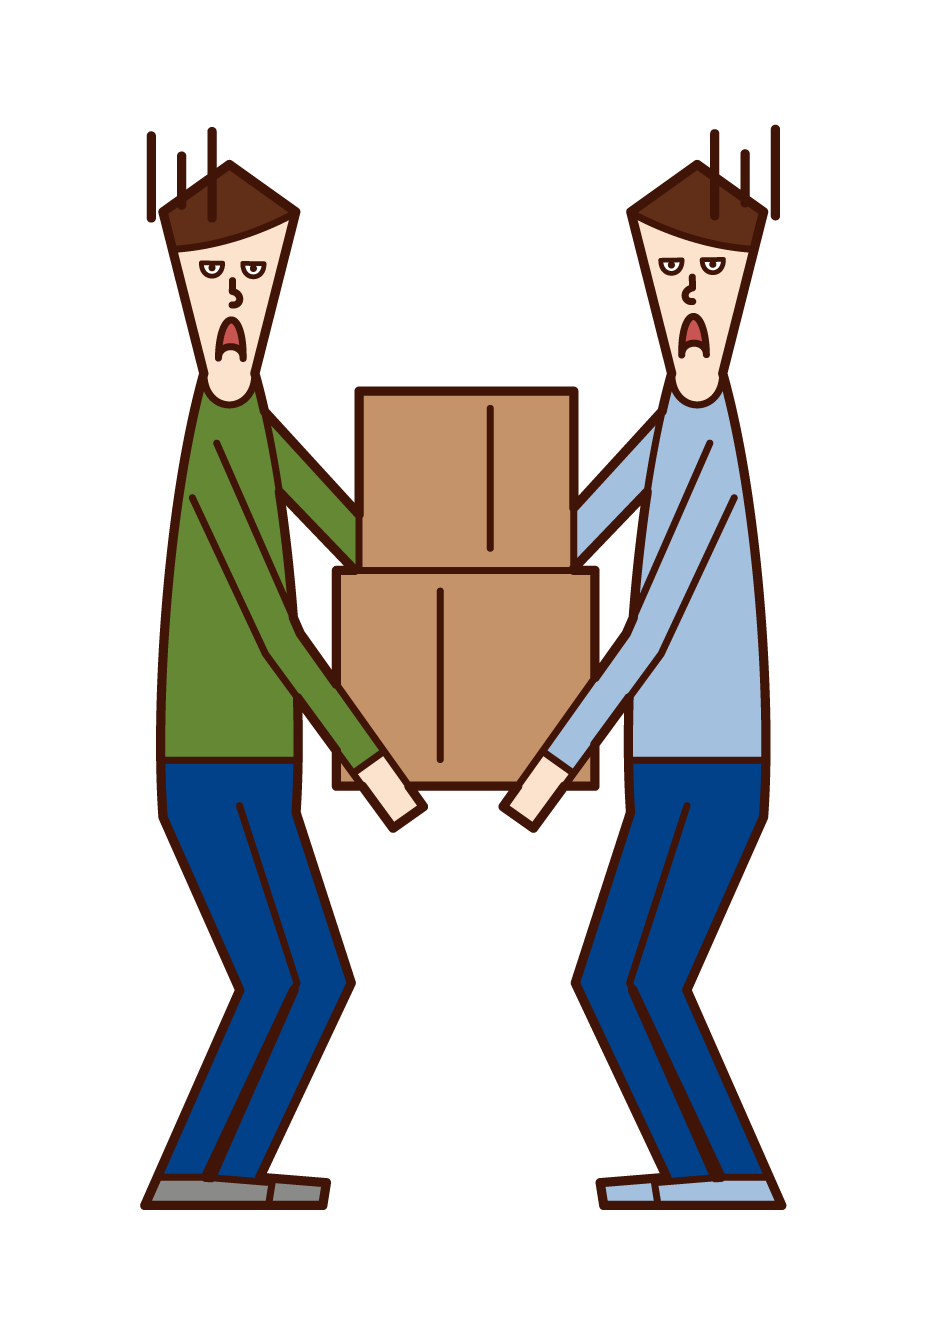 Illustration of people (men) carrying heavy loads by two people